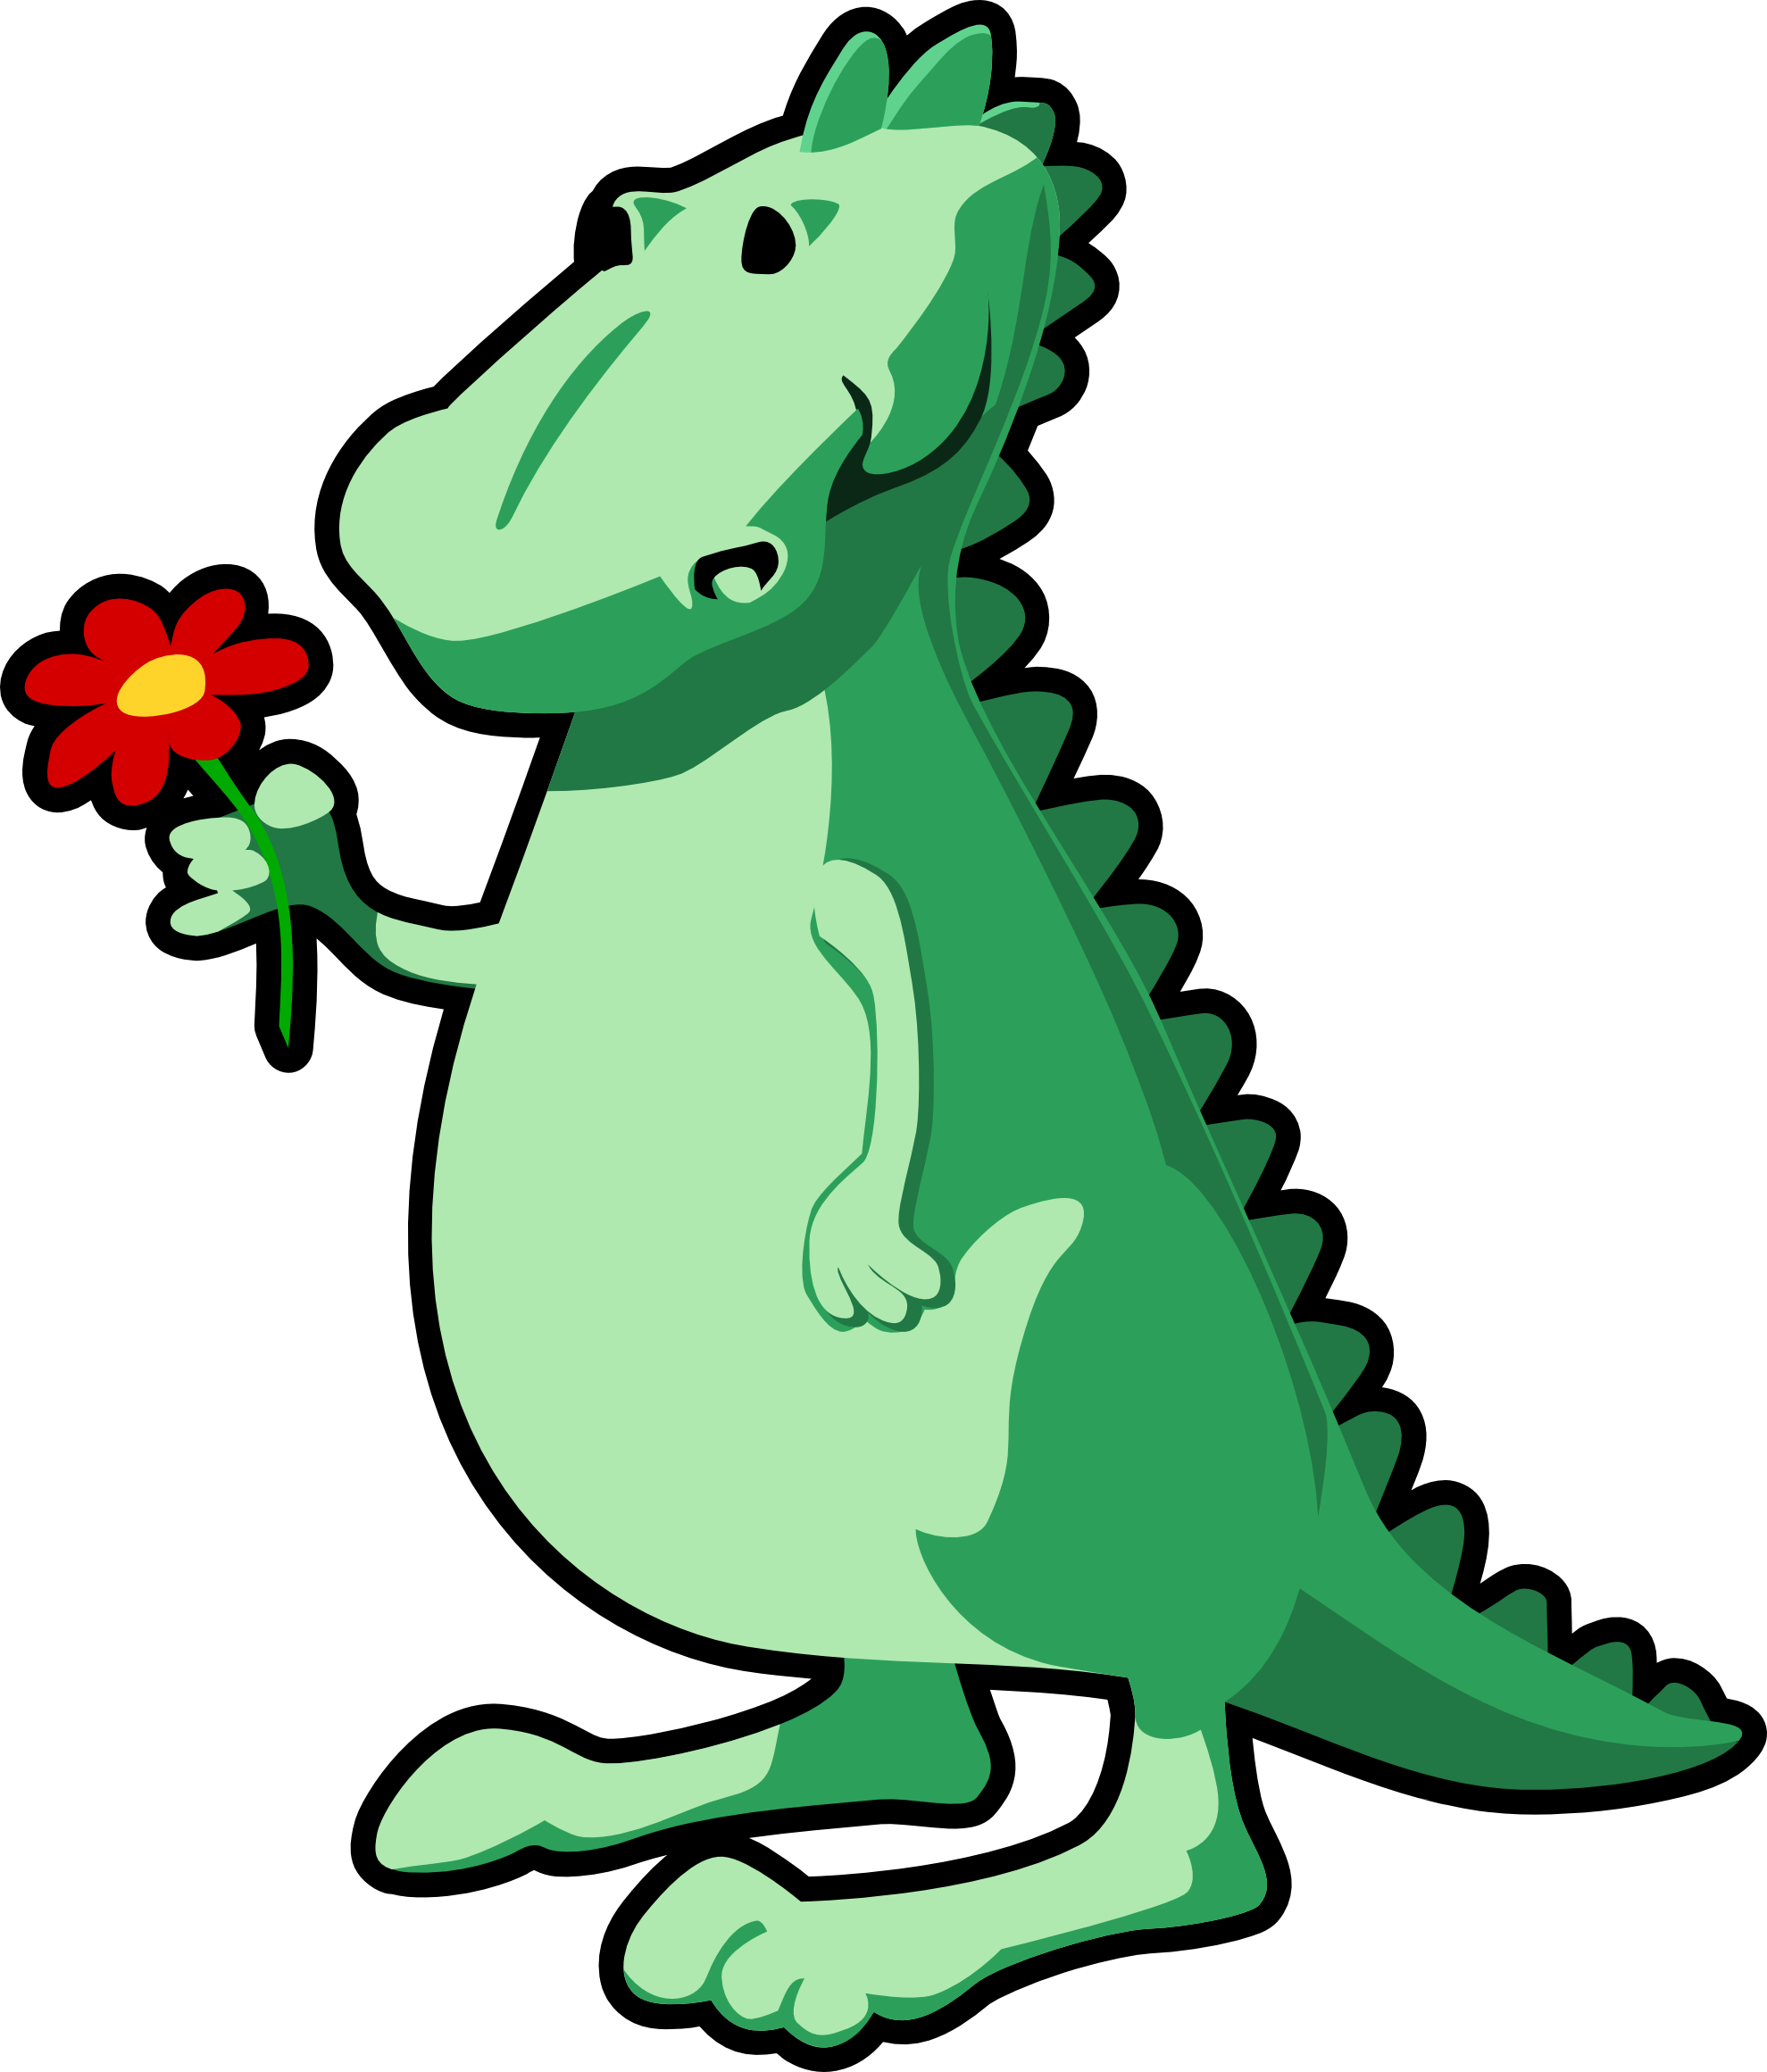 Dinosaurs svg christmas. Freeuse library extinct